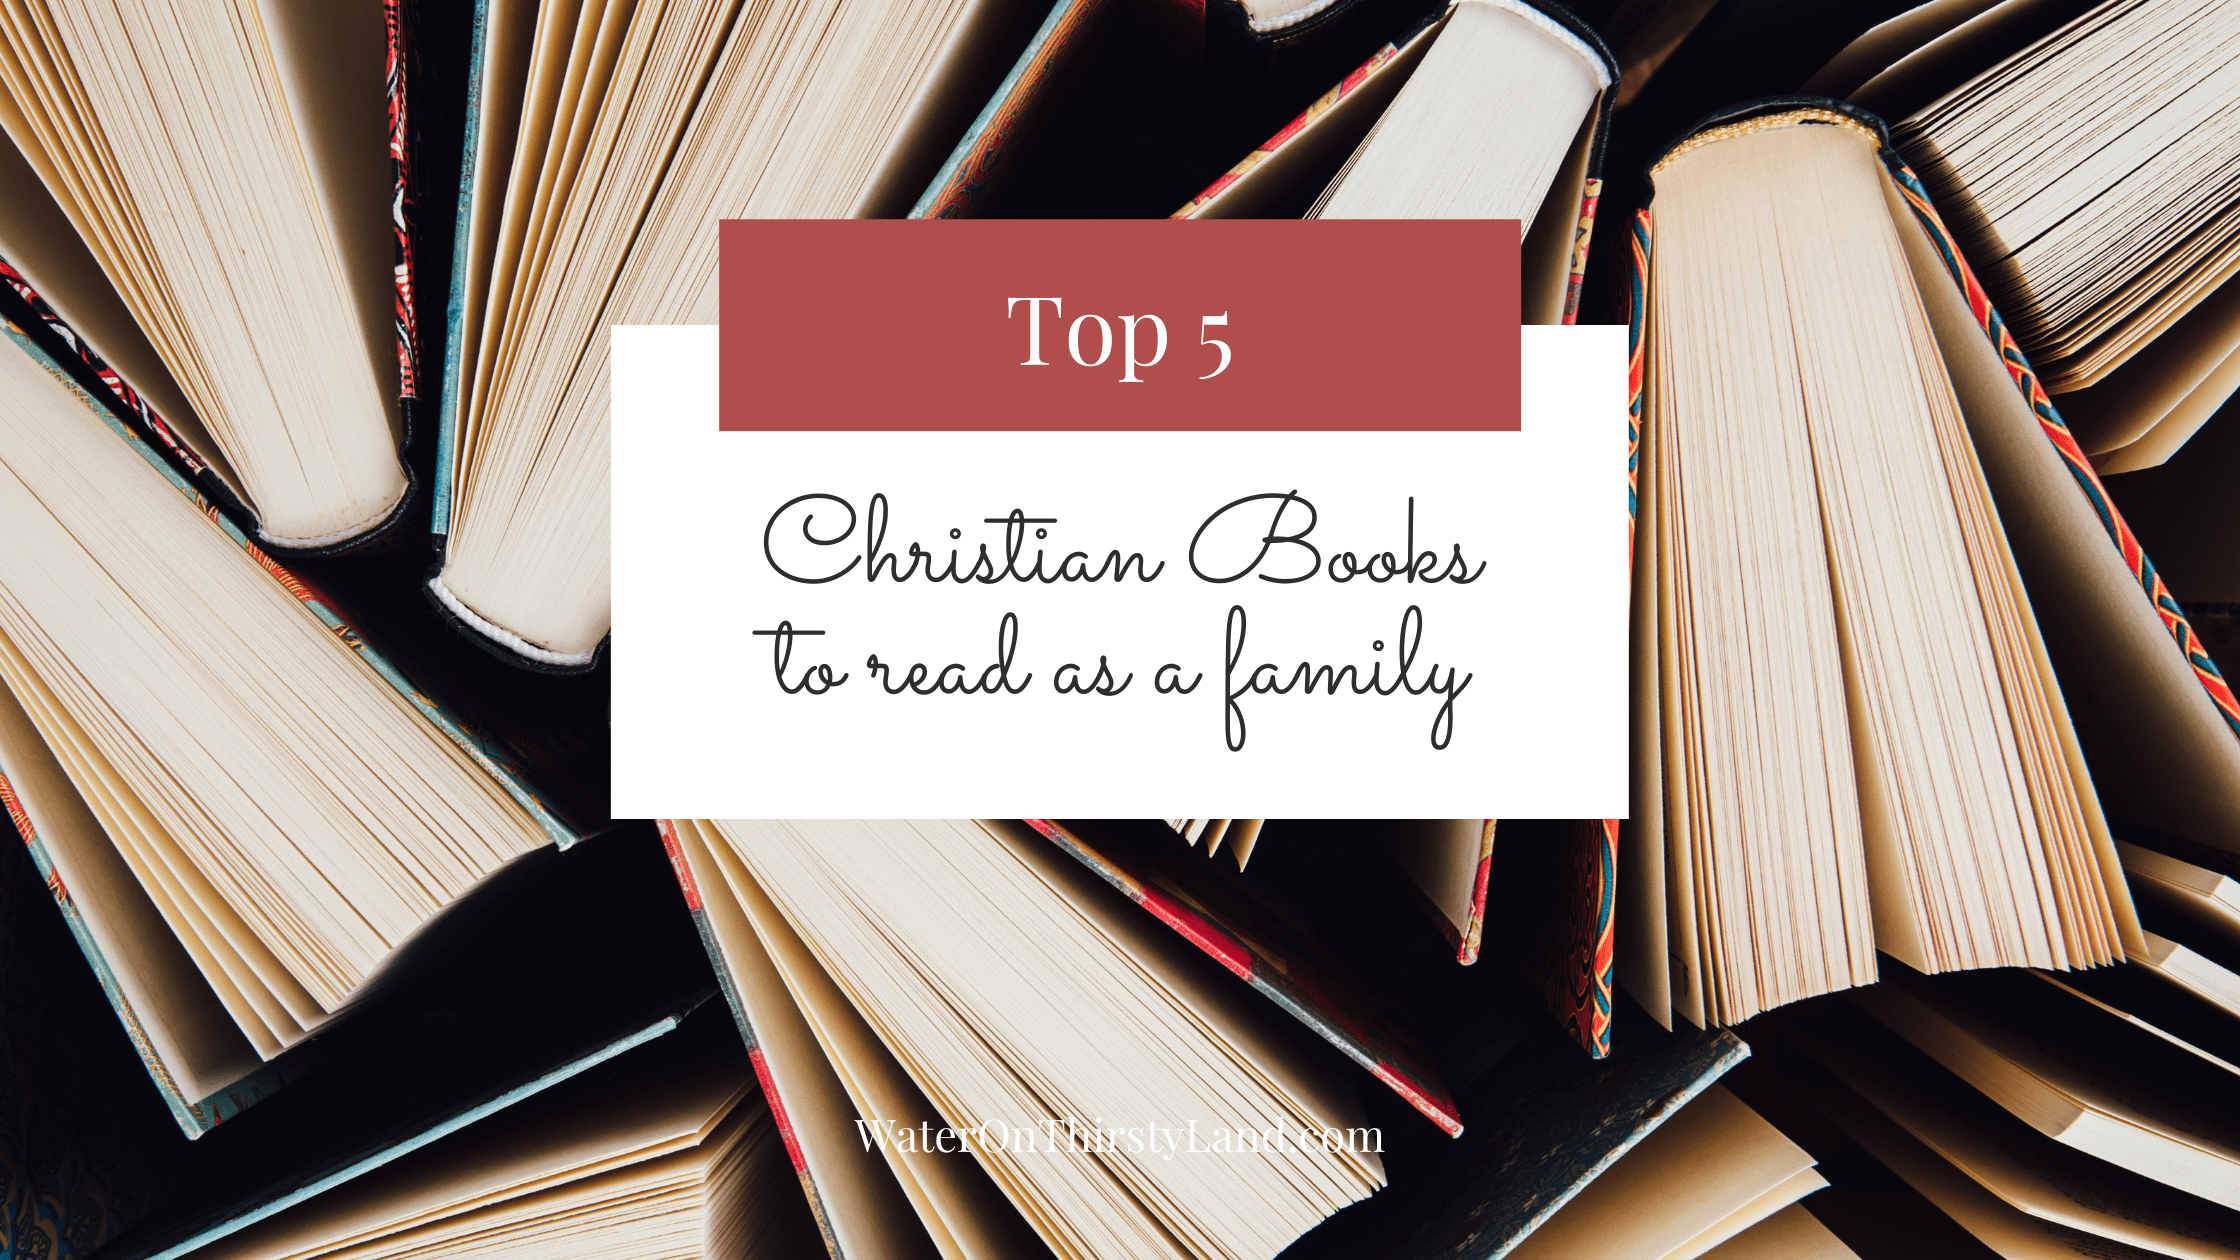 Top 5 Christian Books to read as a family